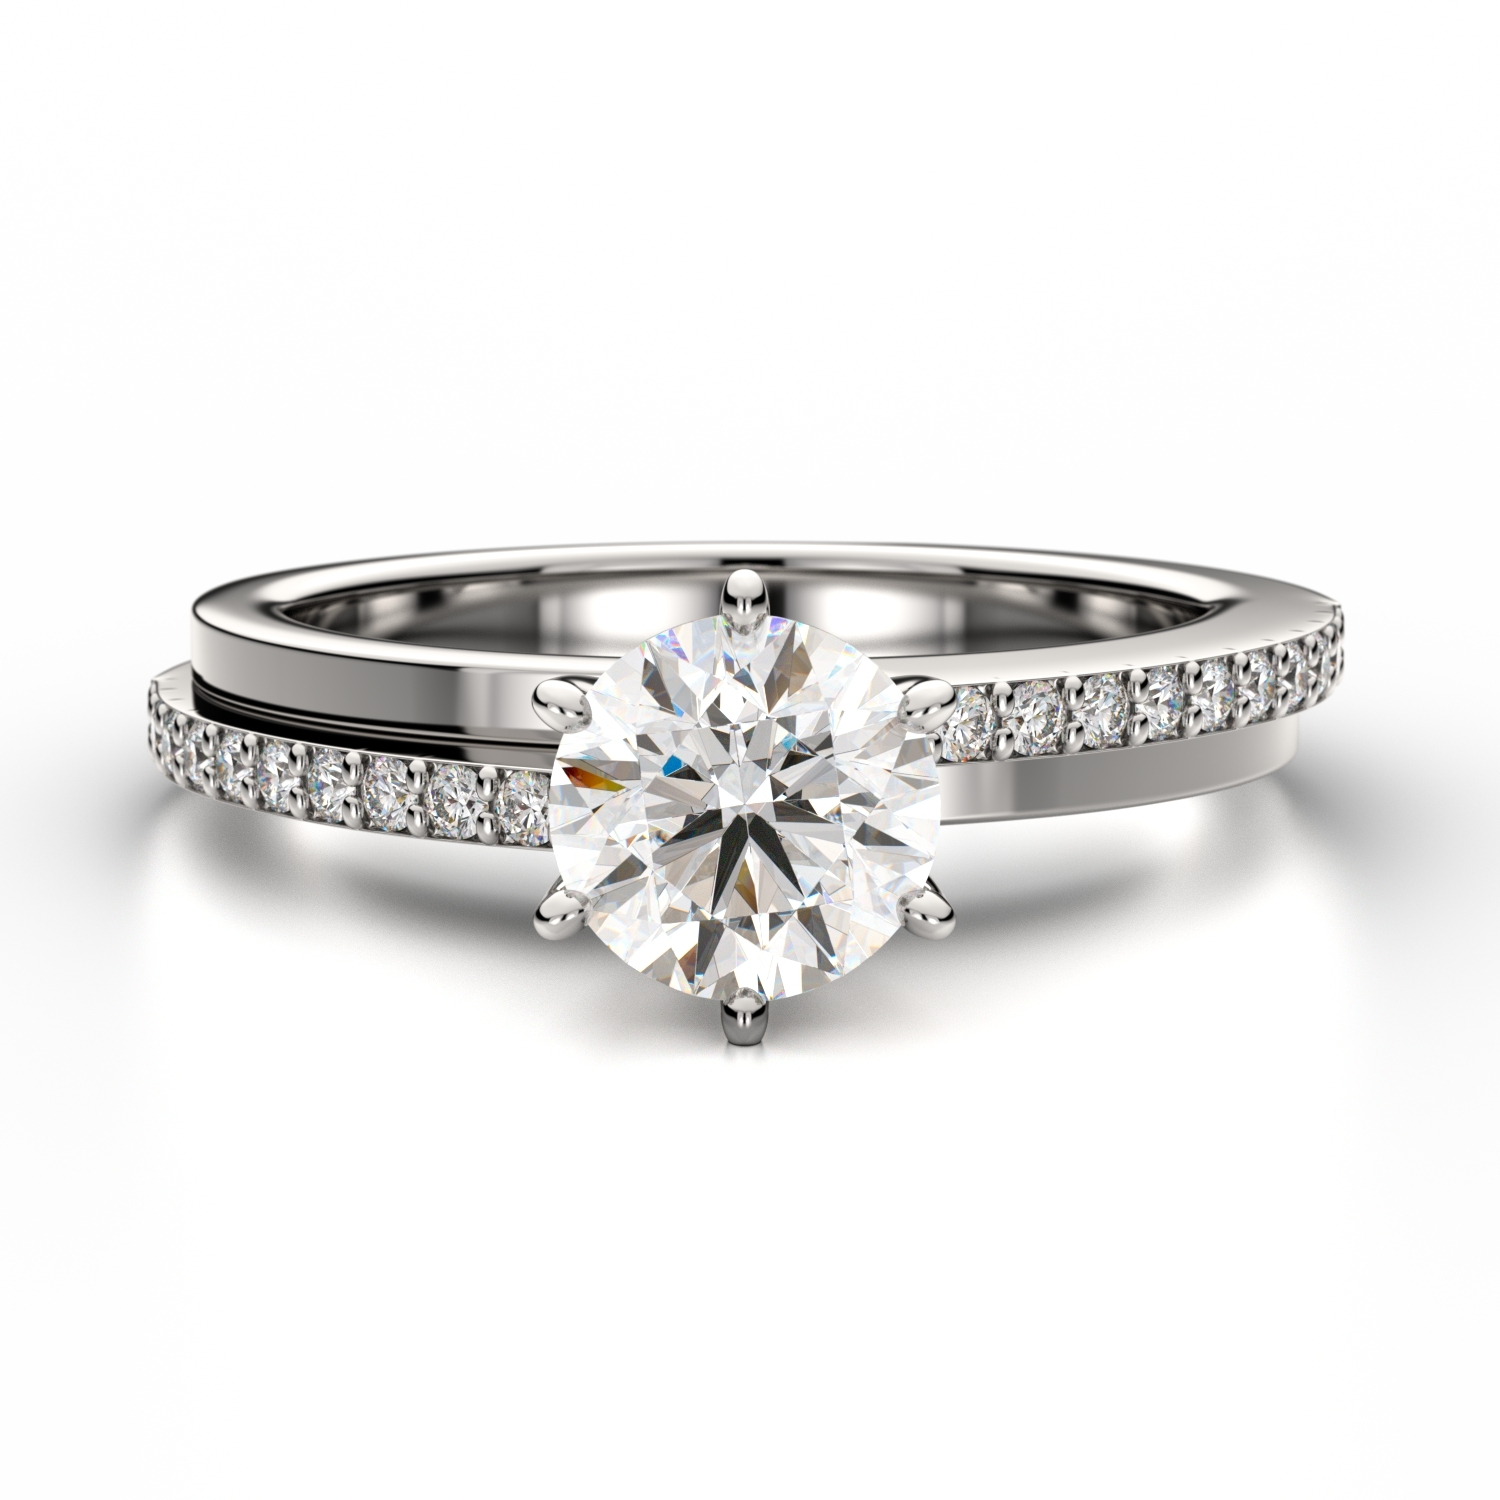 Engagement Rings Newcastle: Round Diamond Ring With Asymmetric Sidestones